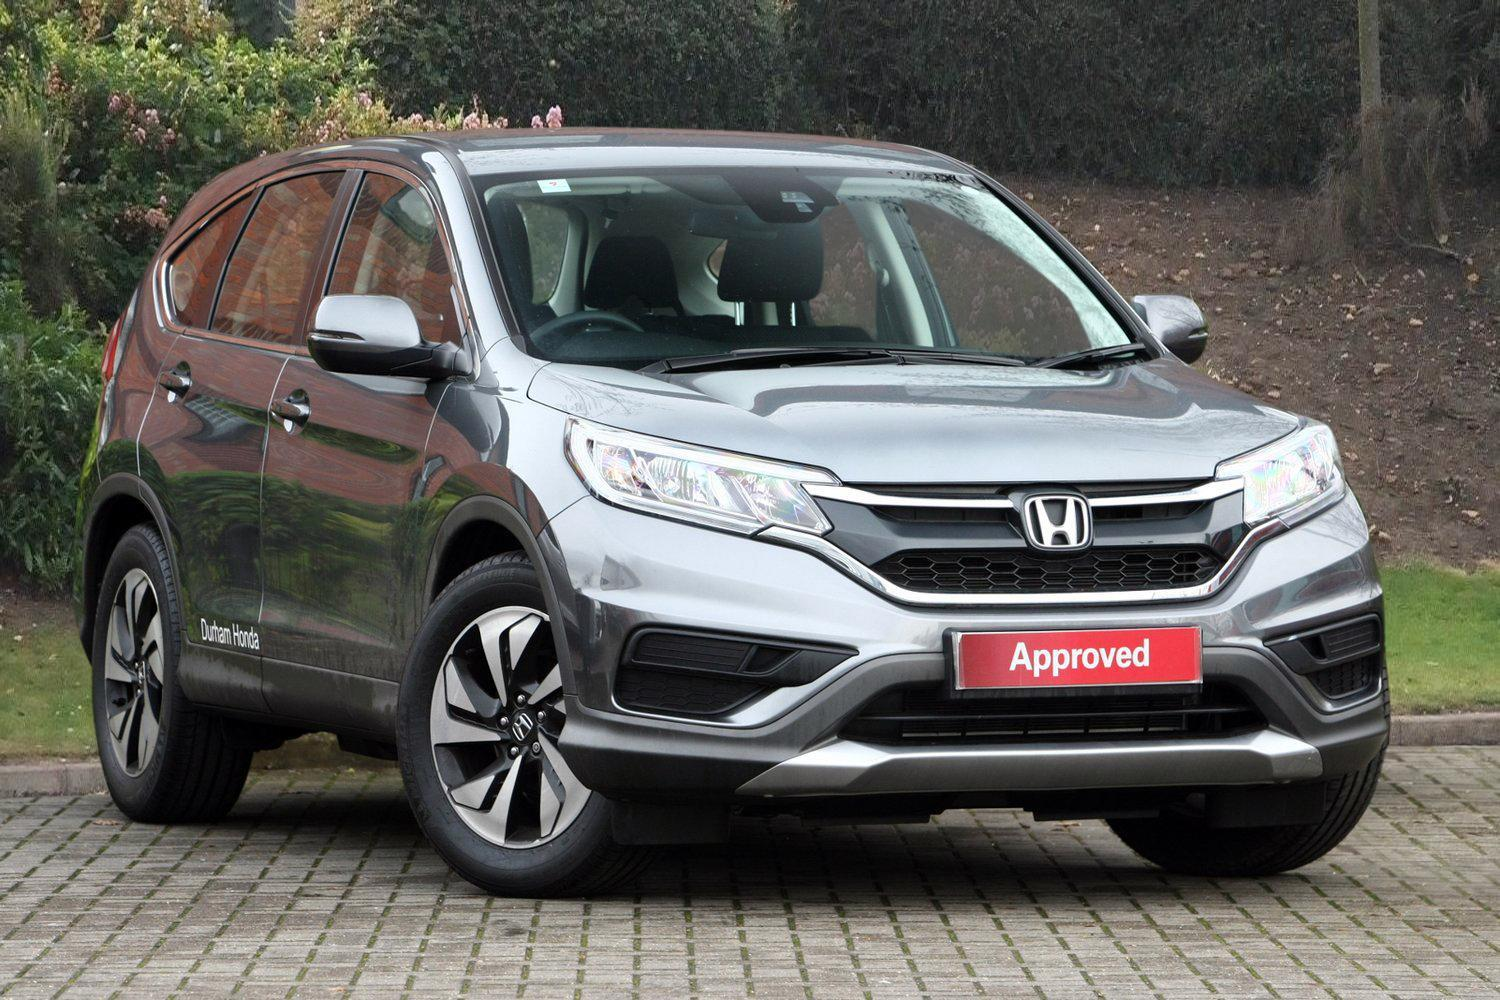 used honda cr v 2 0 i vtec s 5dr 2wd petrol estate for sale vertu honda. Black Bedroom Furniture Sets. Home Design Ideas